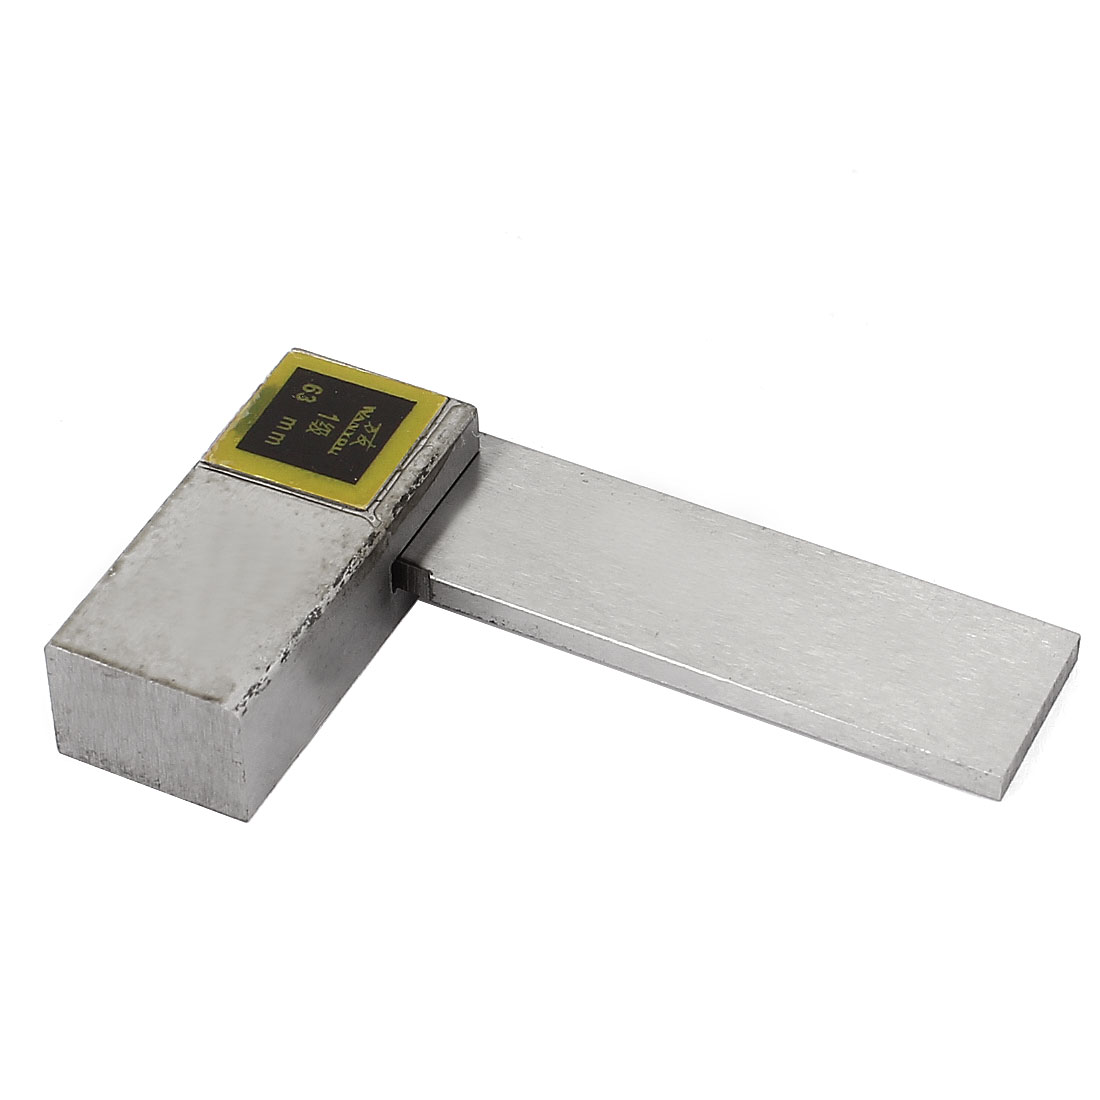 63mm x 40mm Metal L Shaped 90 Degree Angle Try Square Ruler Measuring Tool